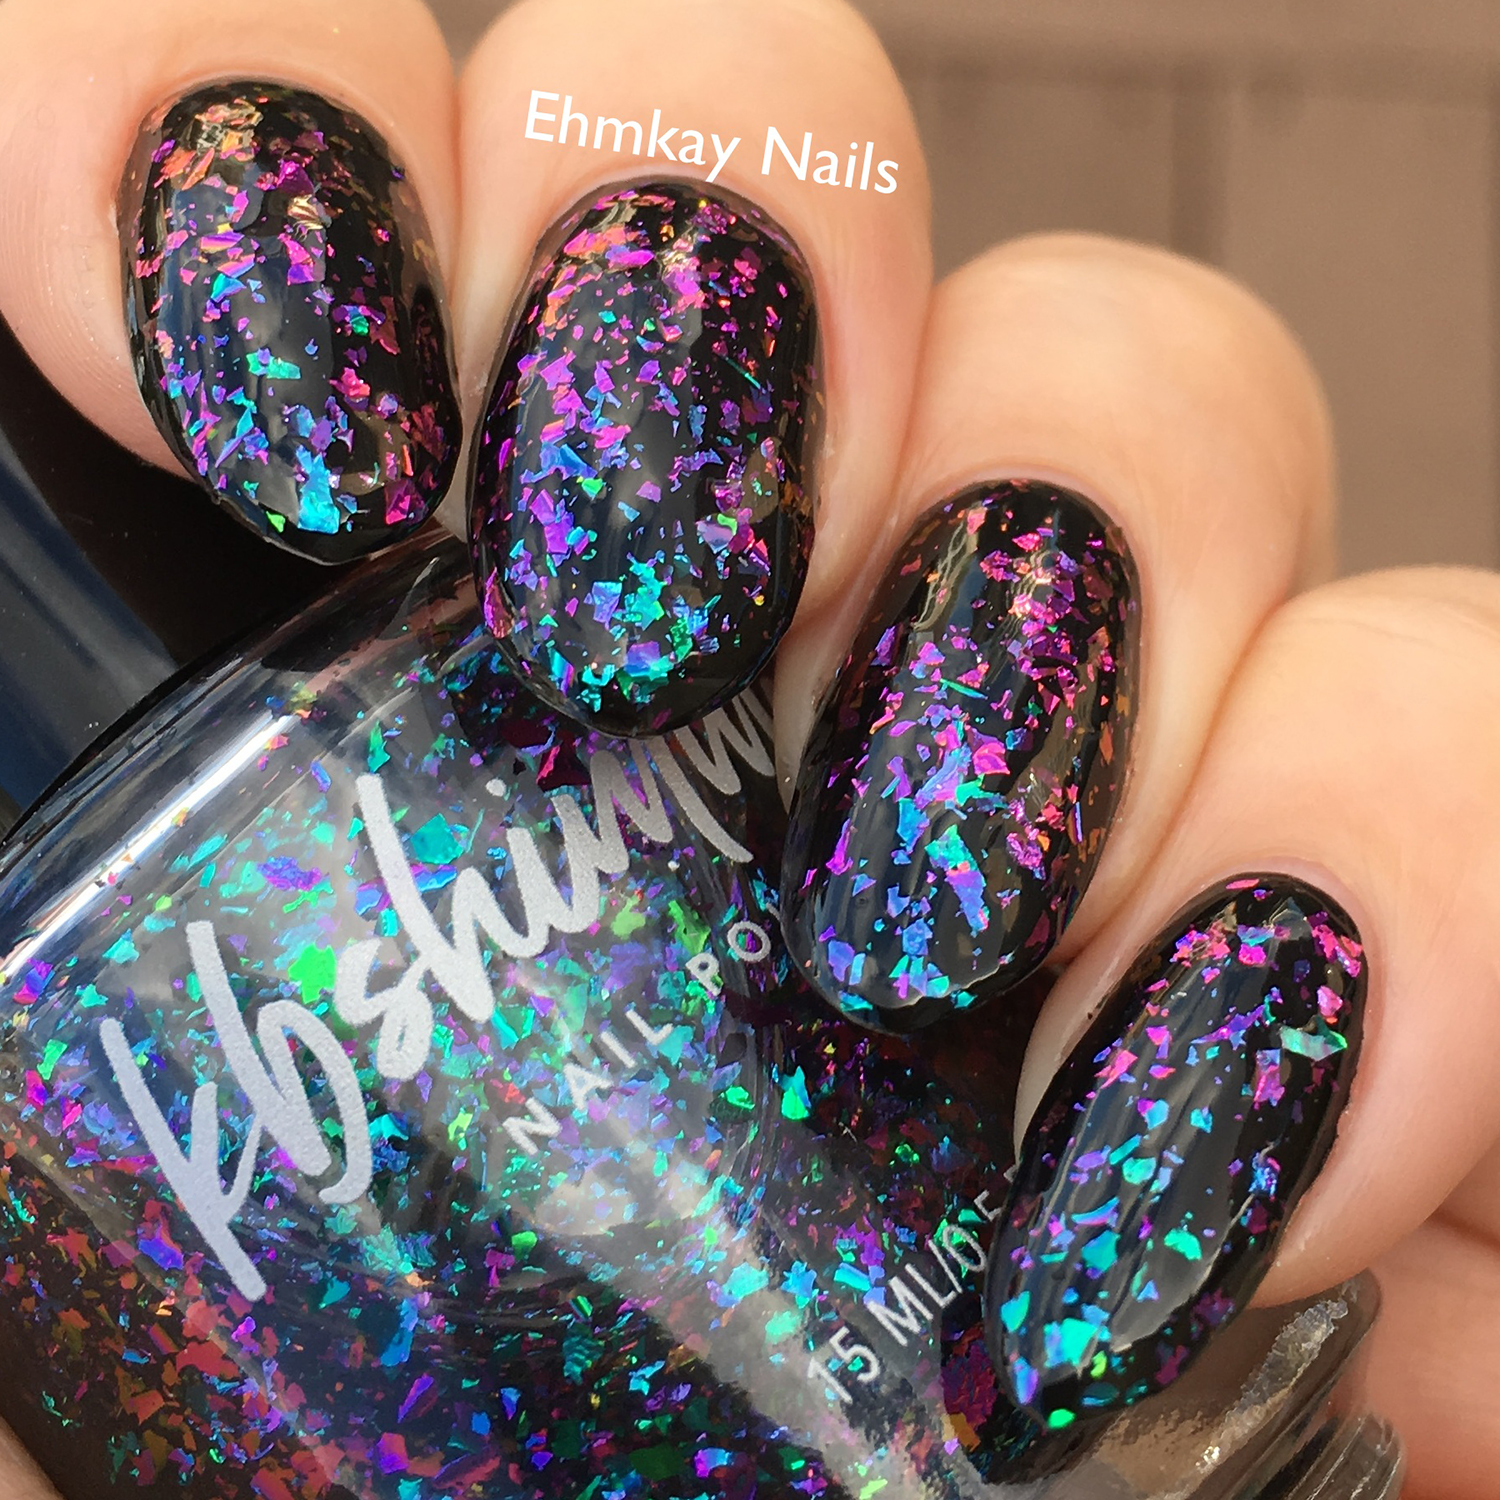 Yes Weekend Multichrome Flake Nail Polish Top Coat By Kbshimmer